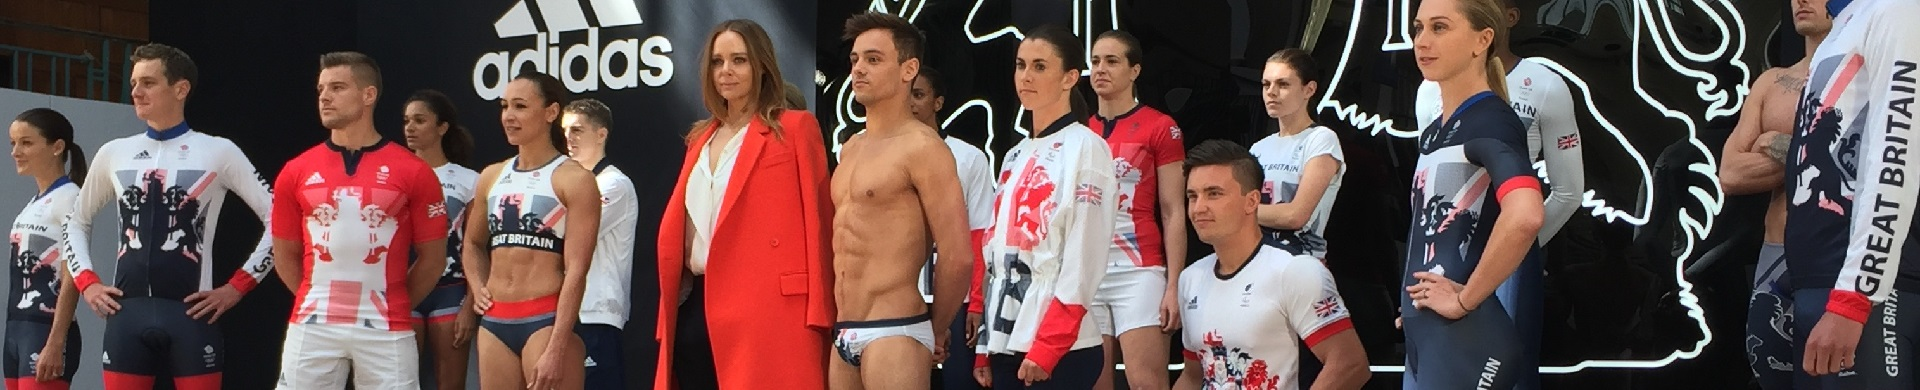 Stella Mccartney  + GB +  Rio 2016 Olympic + Kit